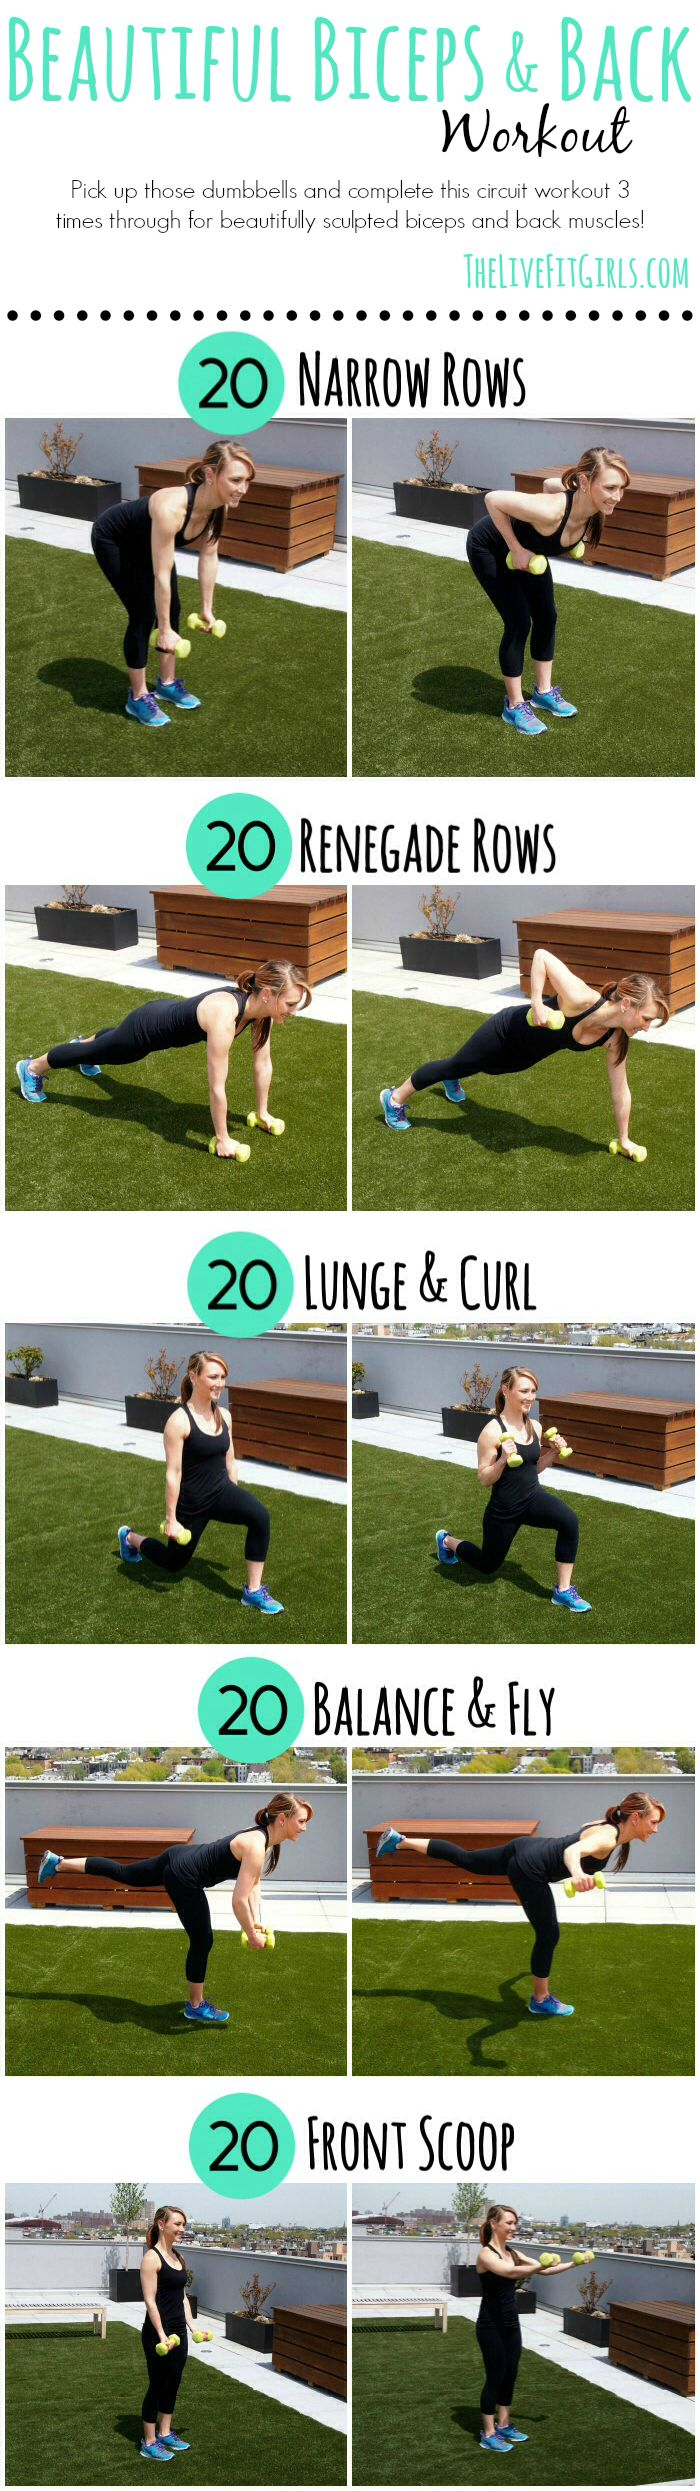 Pin On Upper Body Workouts And Exercises